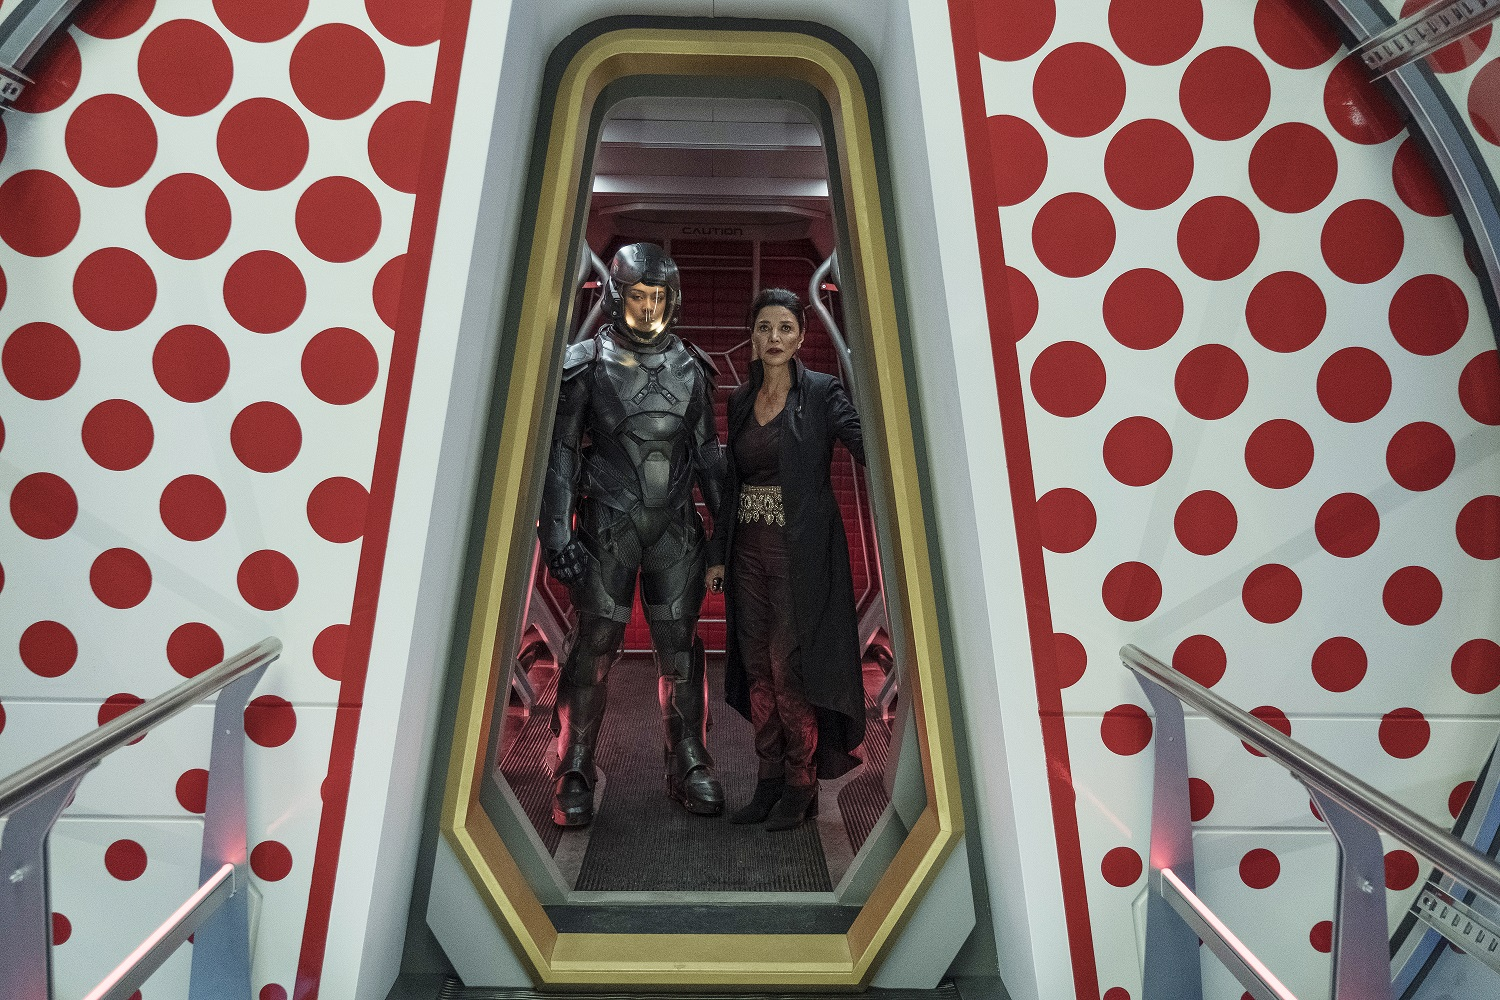 Frankie Adams as Bobbie Draper, Shohreh Aghdashloo as Chrisjen Avasarala on The Expanse